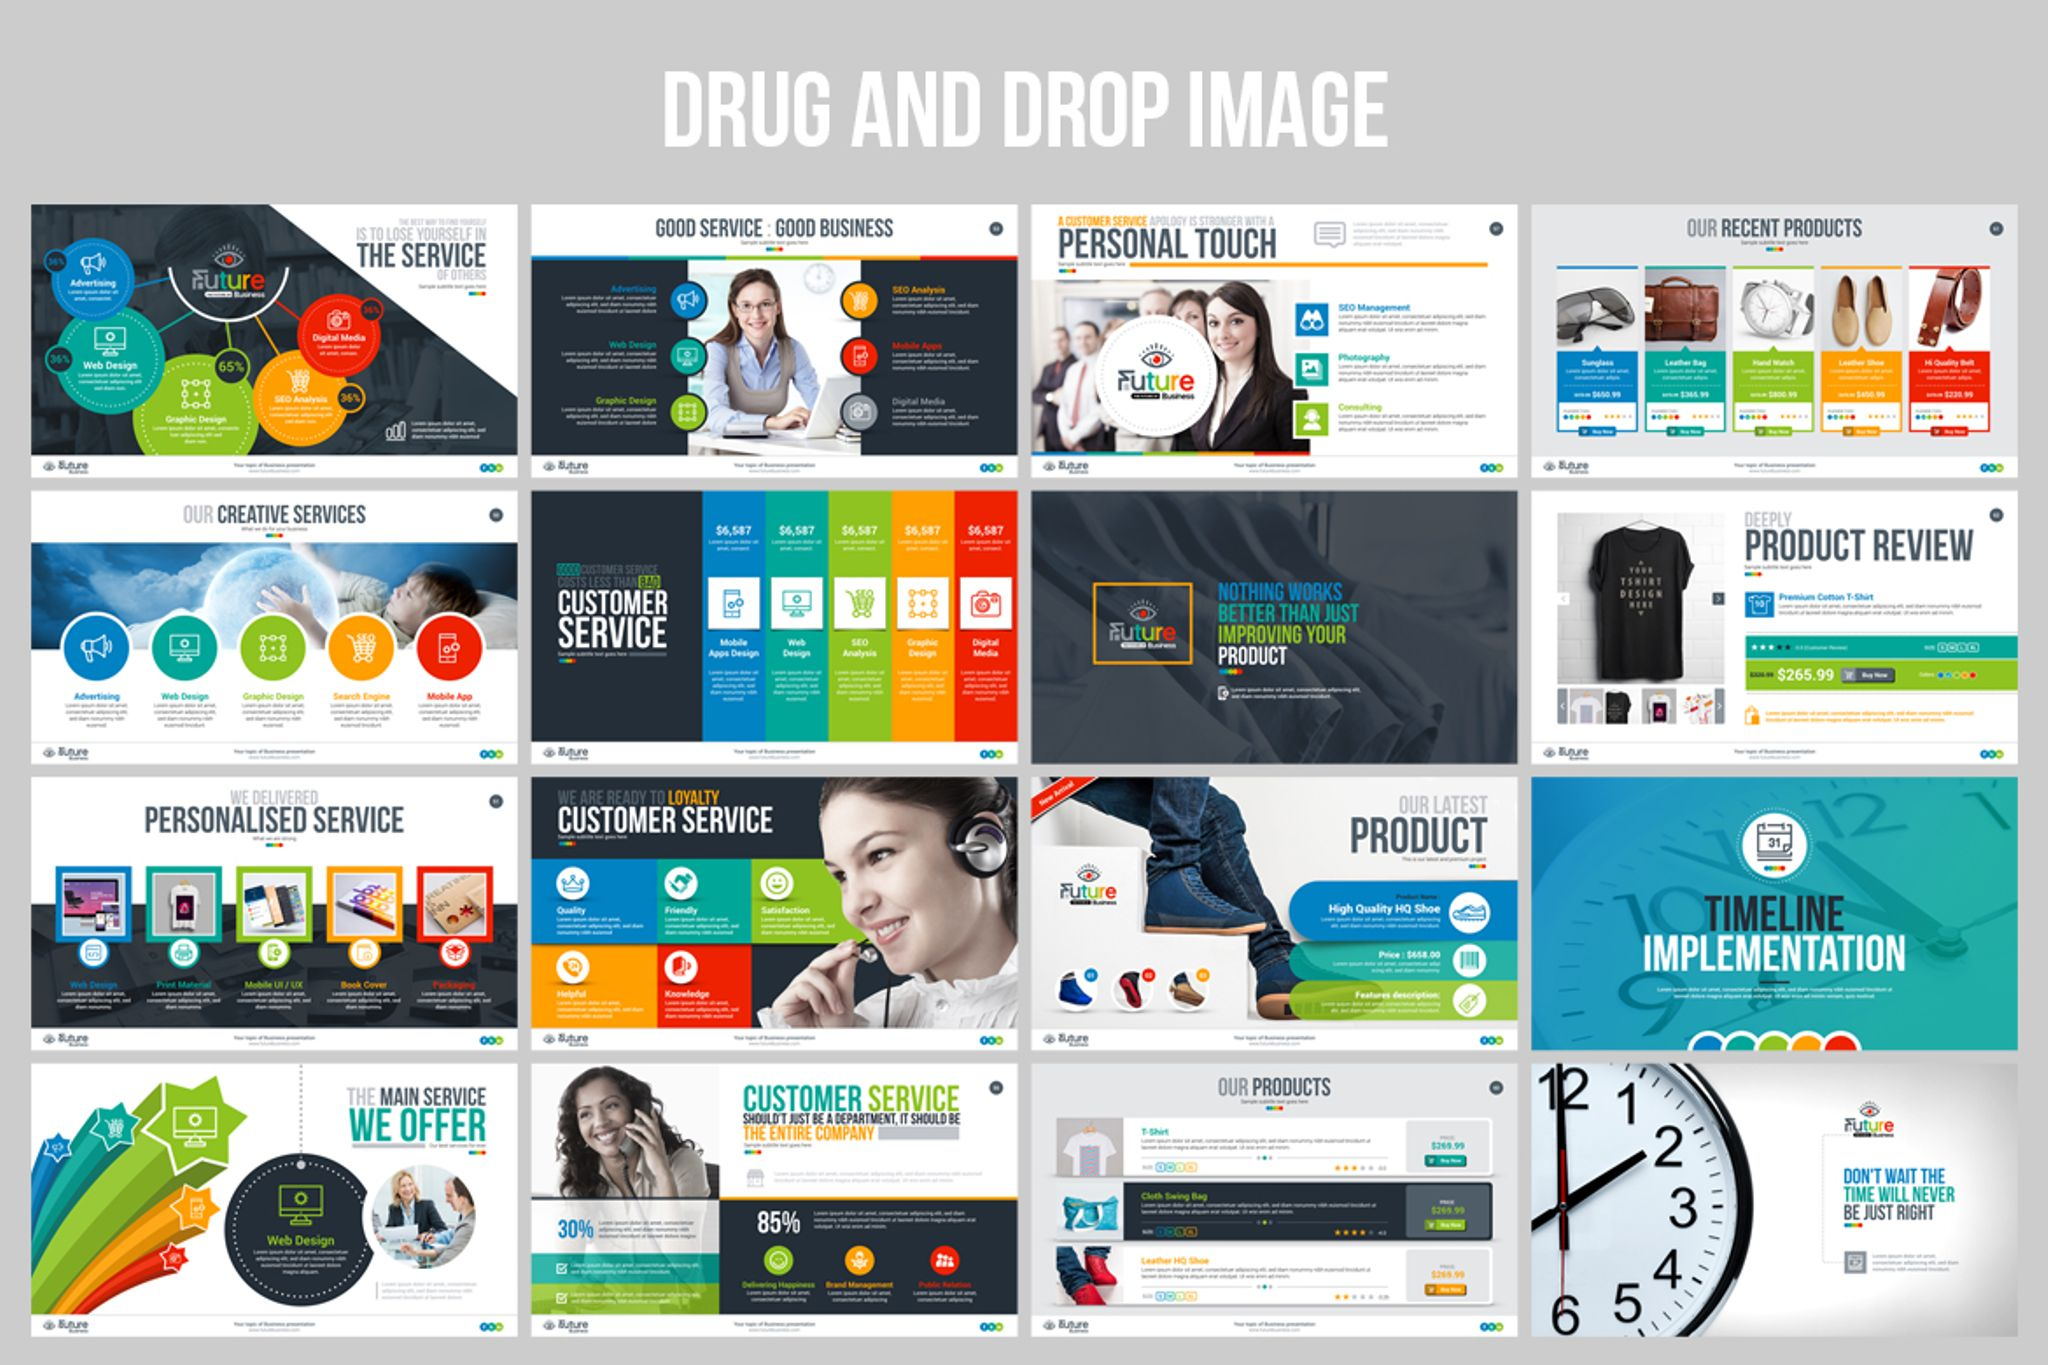 https://s3.tmimgcdn.com/templates/3688/scr/04_Drug-and-drop-image-ready-business-plan-presentation.jpg